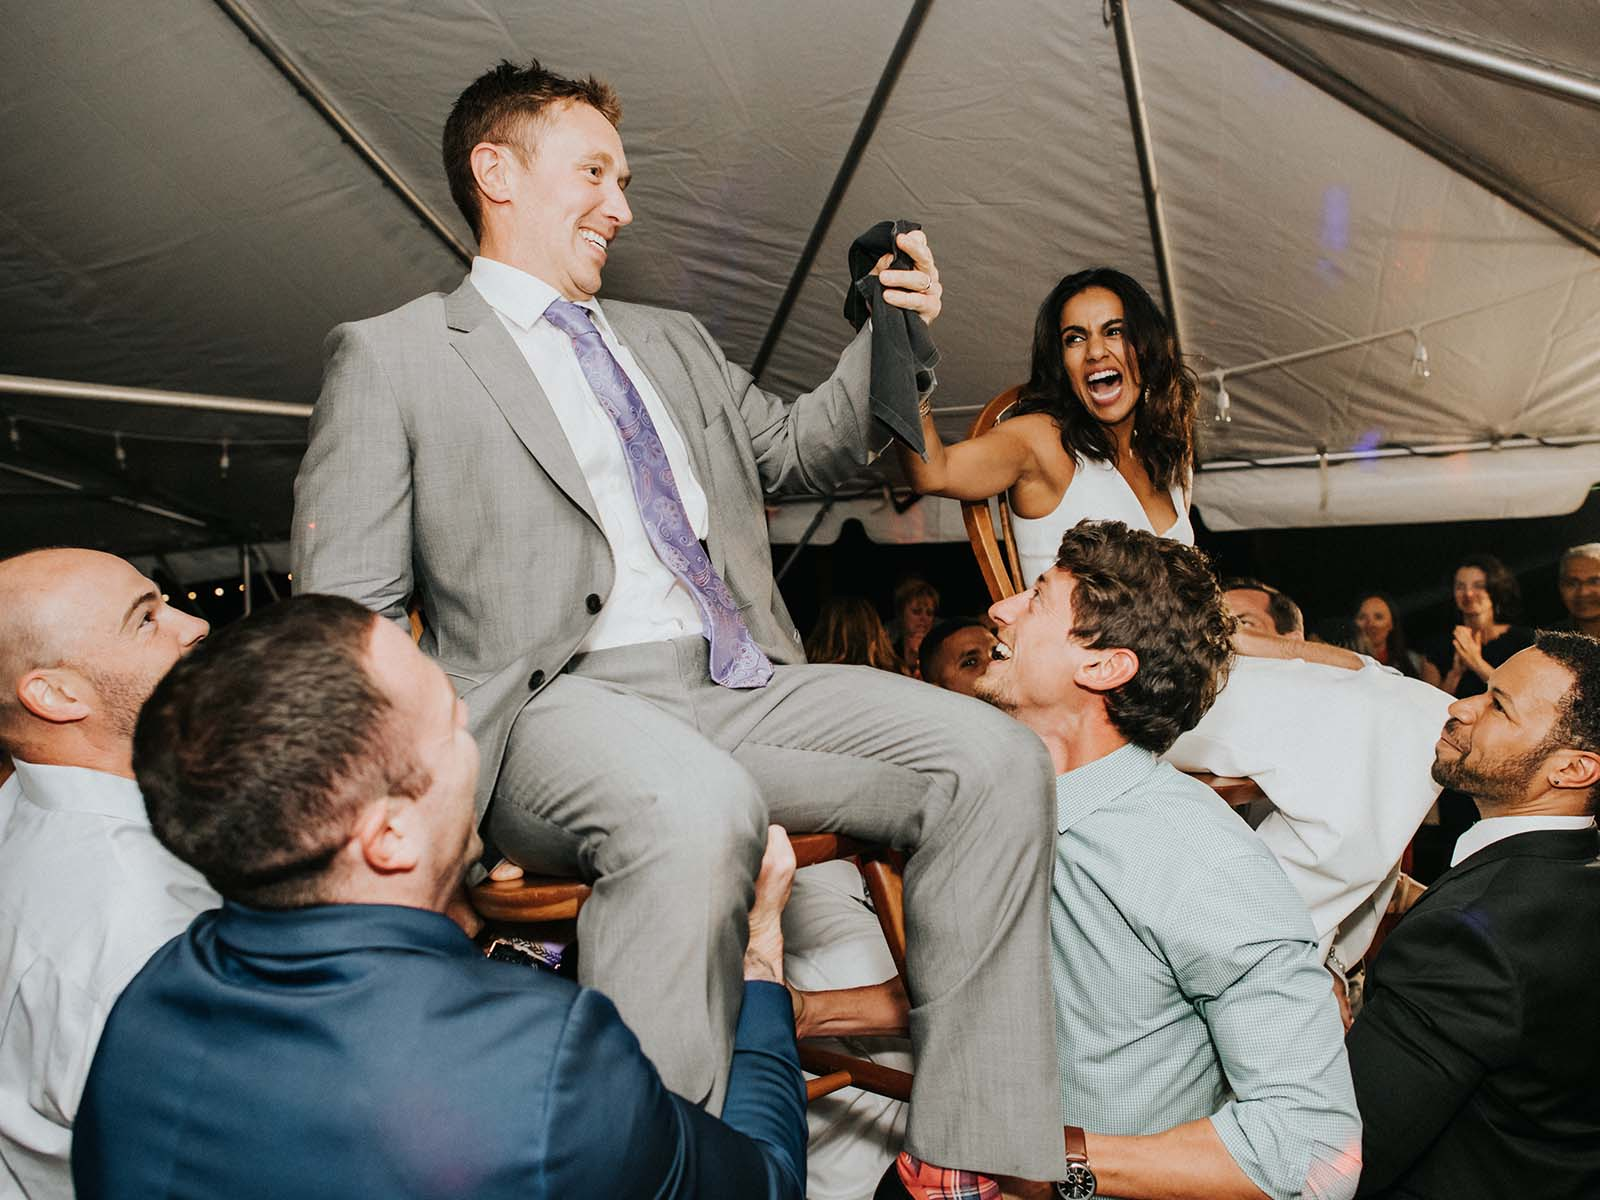 bride and groom lifted by groomsmen